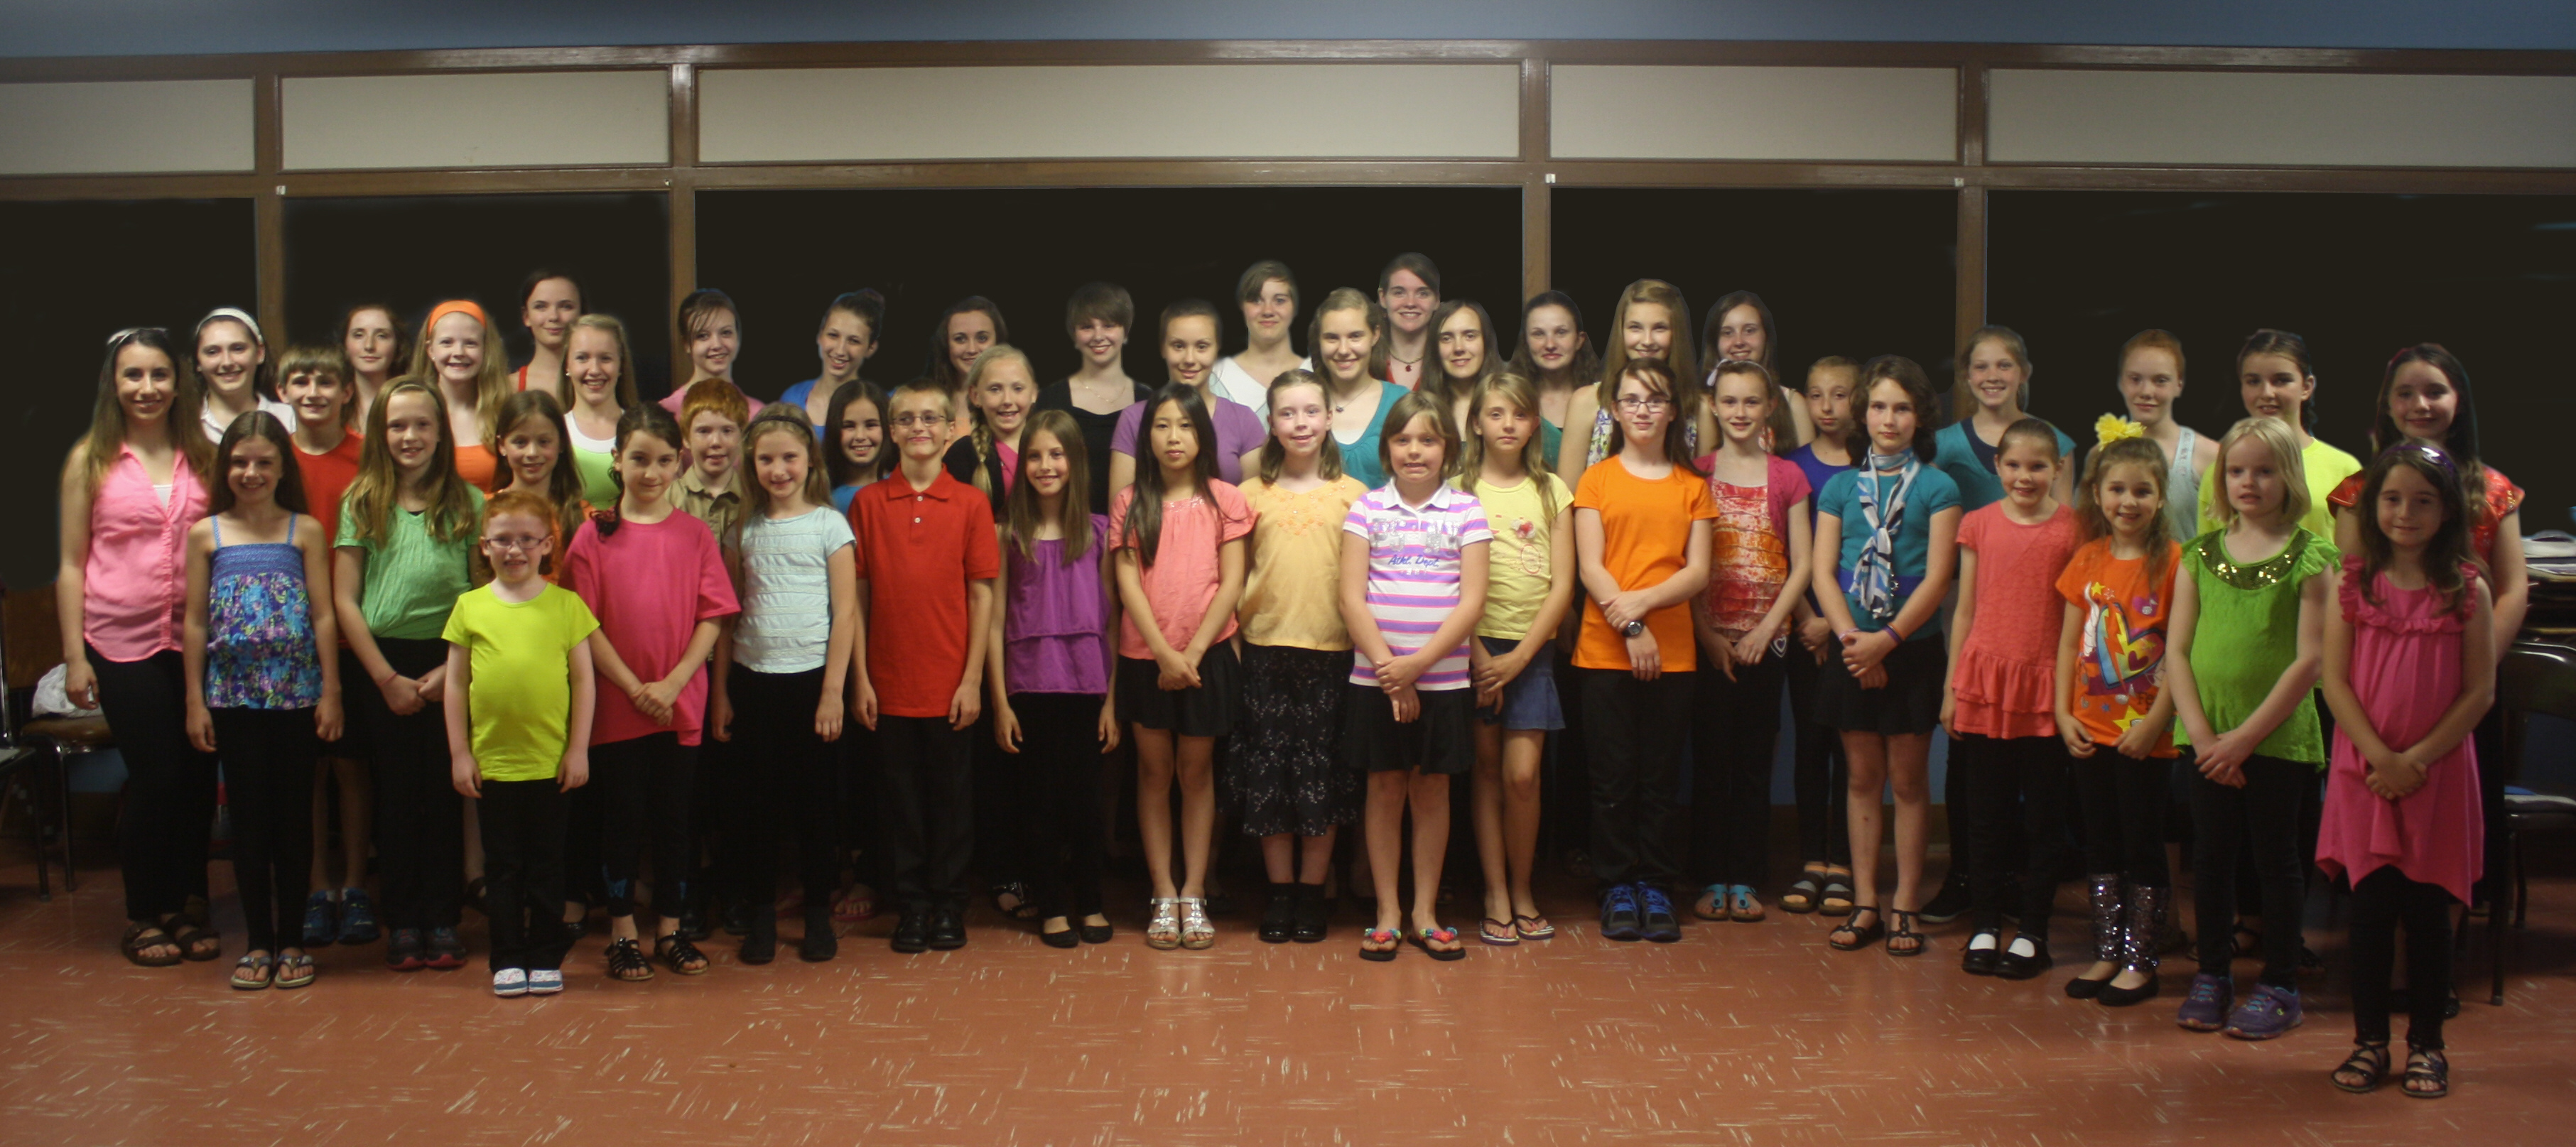 Youth choir2014.EDITED.2